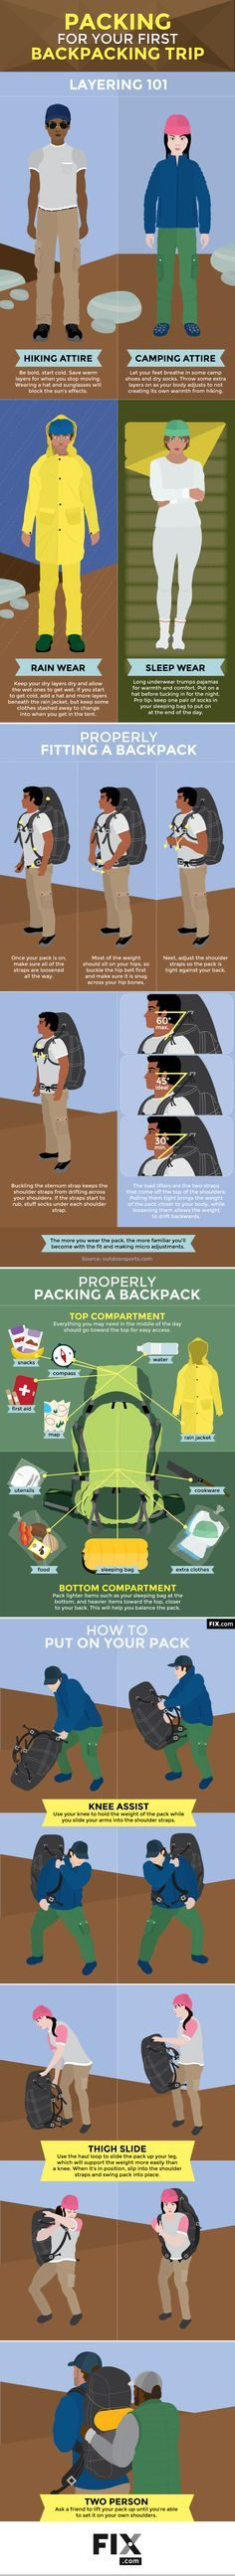 How to Pack for Your First Backpacking Trip: Learn the Art of Balance, Compression, and Accessibility!